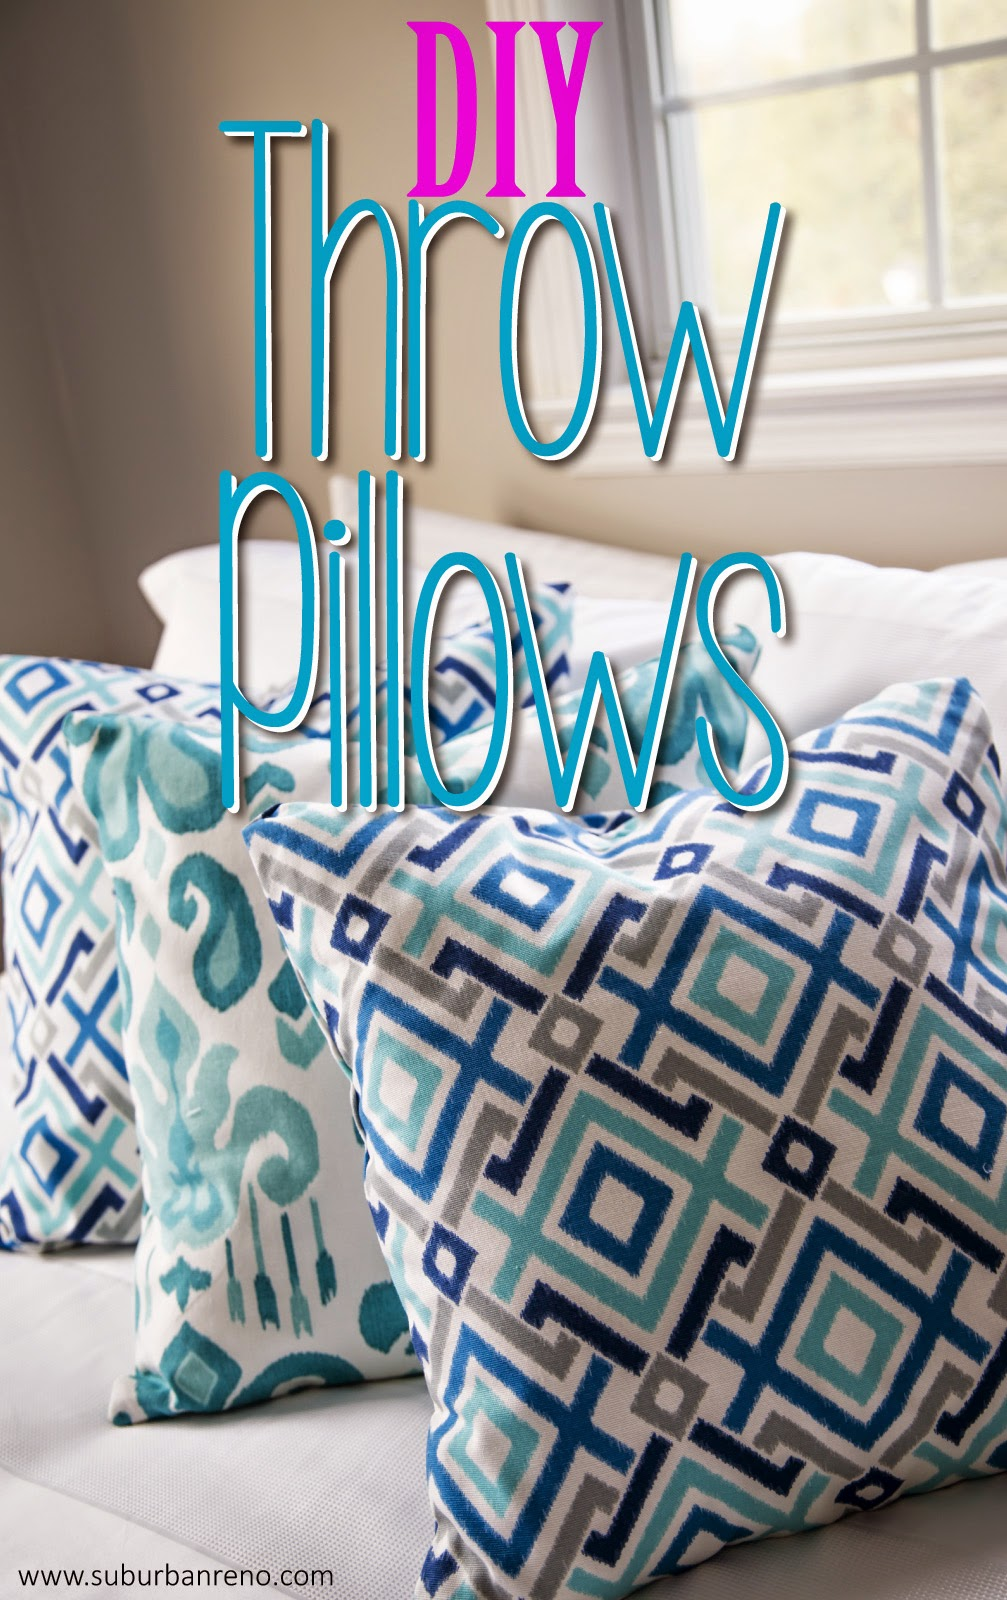 Diy Throw Pillows No Sew: DIY Throw Pillows (no sewing necessary!)   The Glamorous Gal,